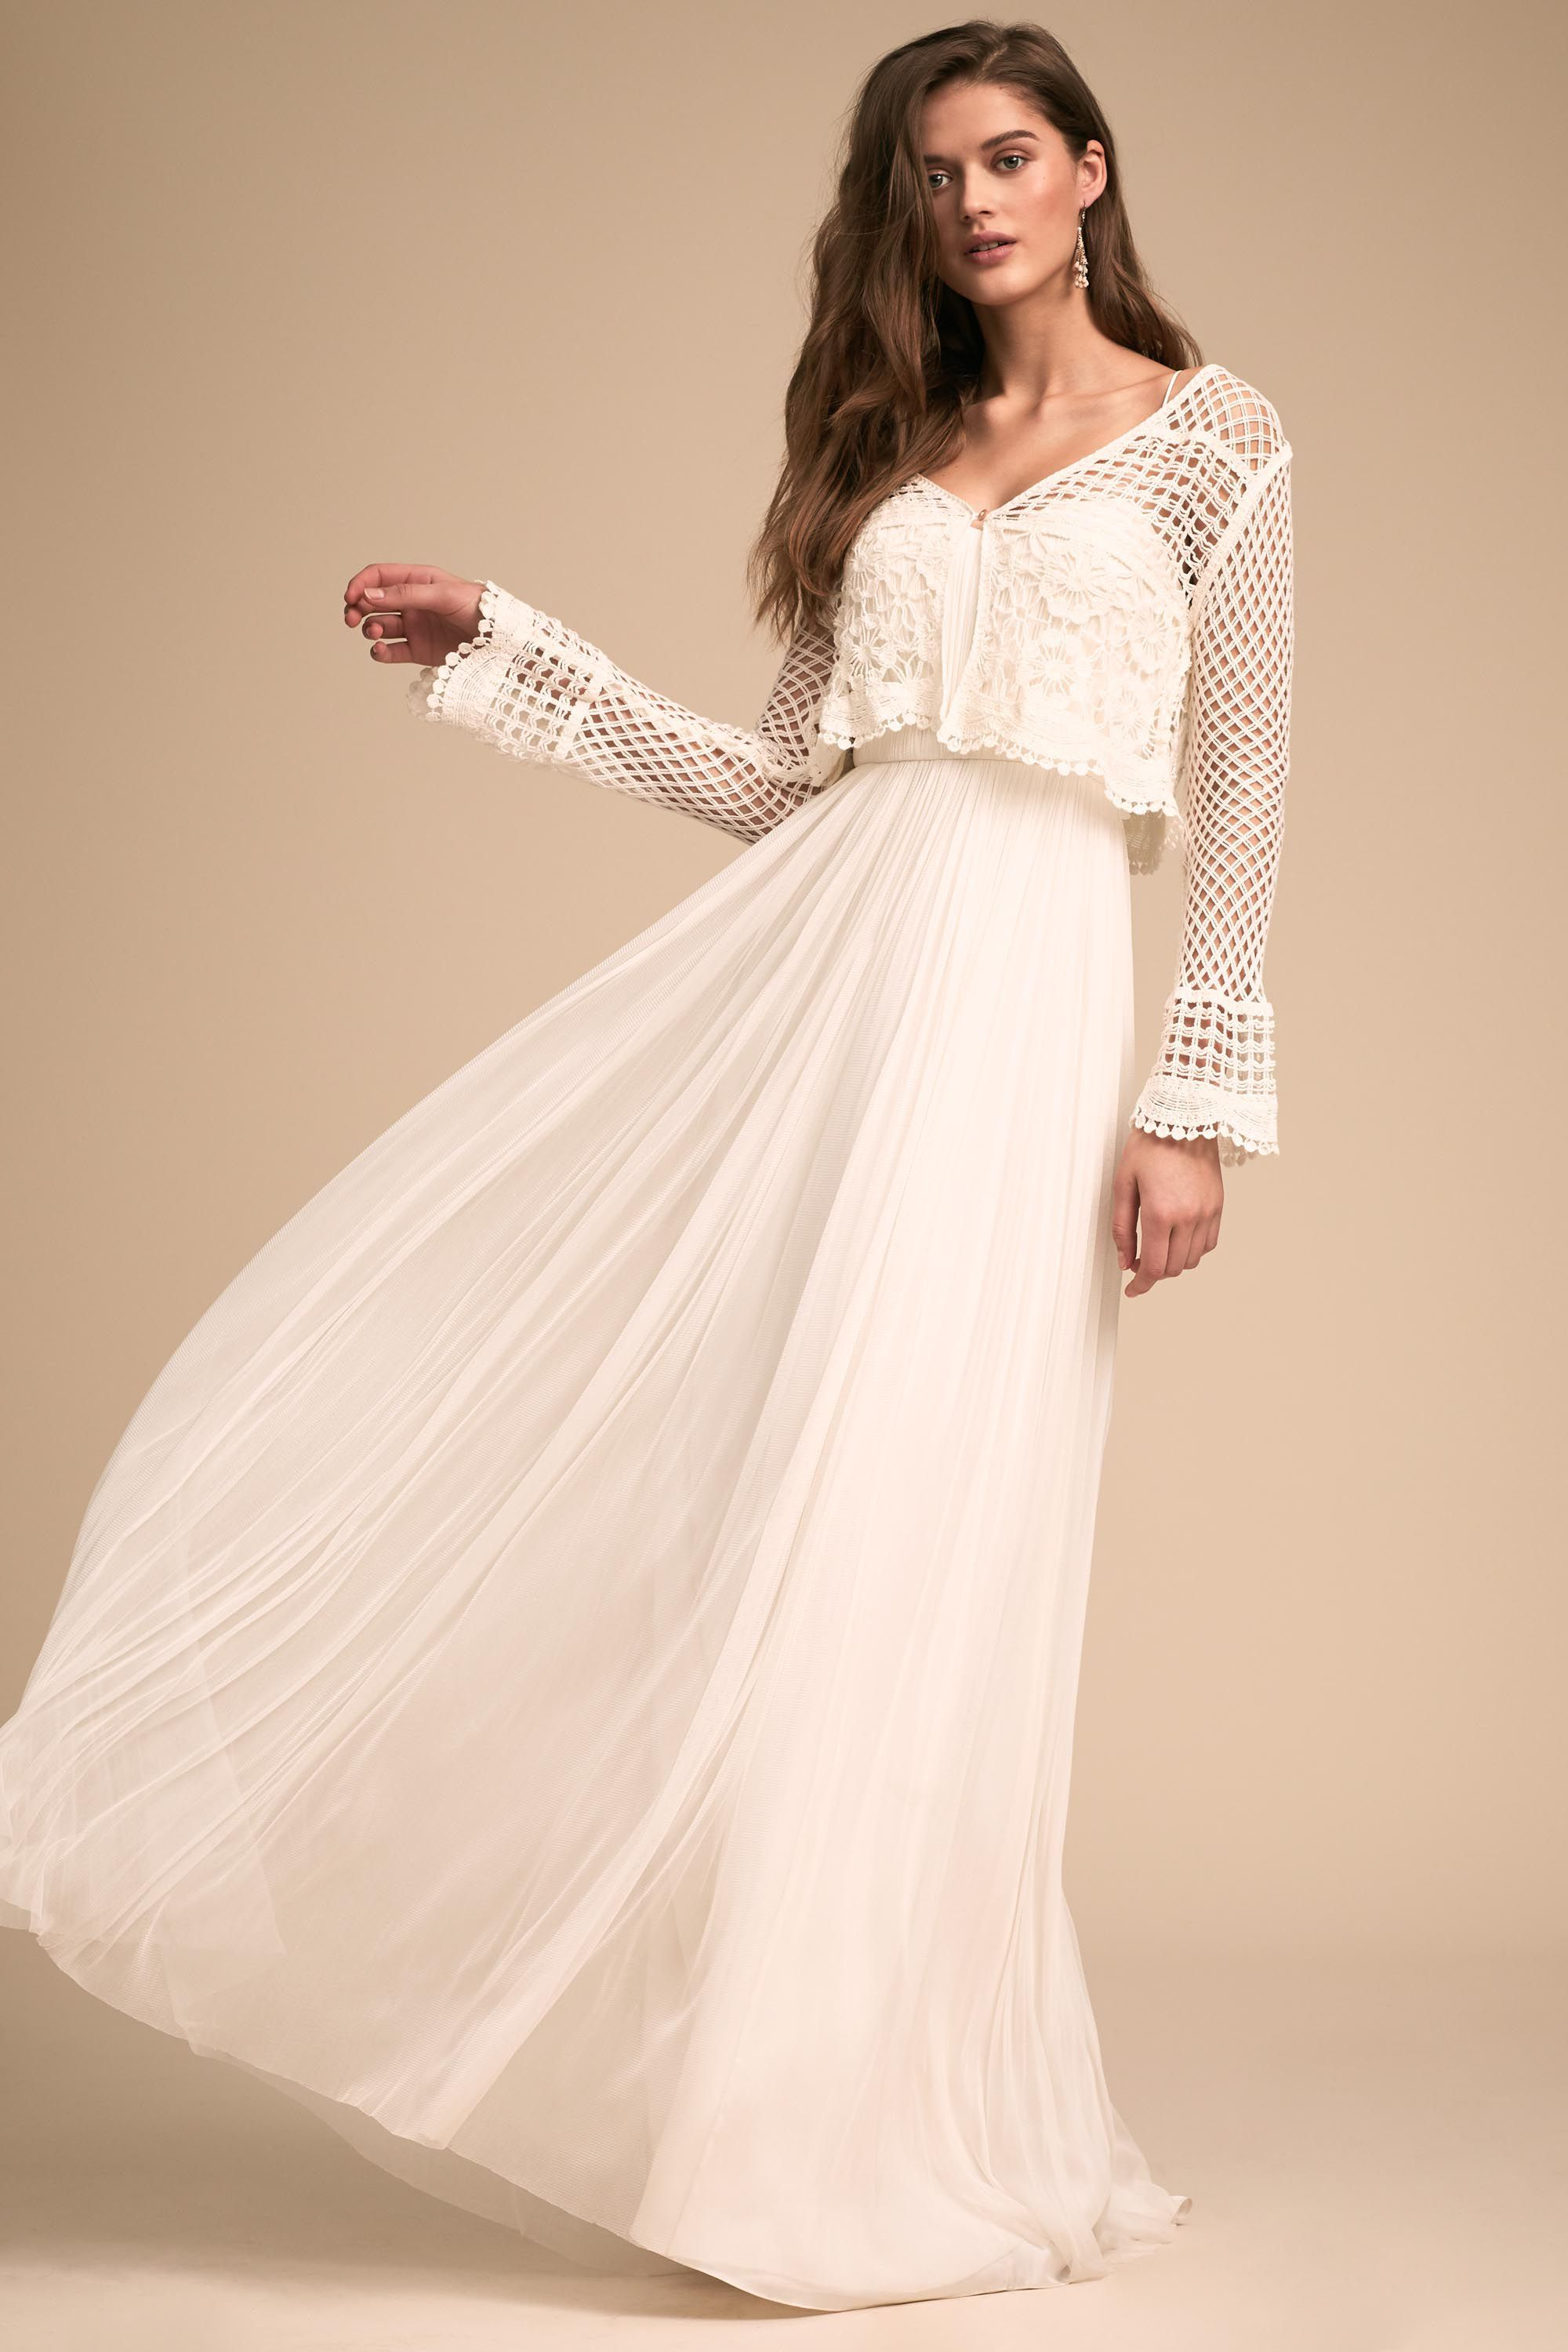 Wedding dresses department stores  Conway Cardigan from BHLDN  The White Boutique The Color Wheel